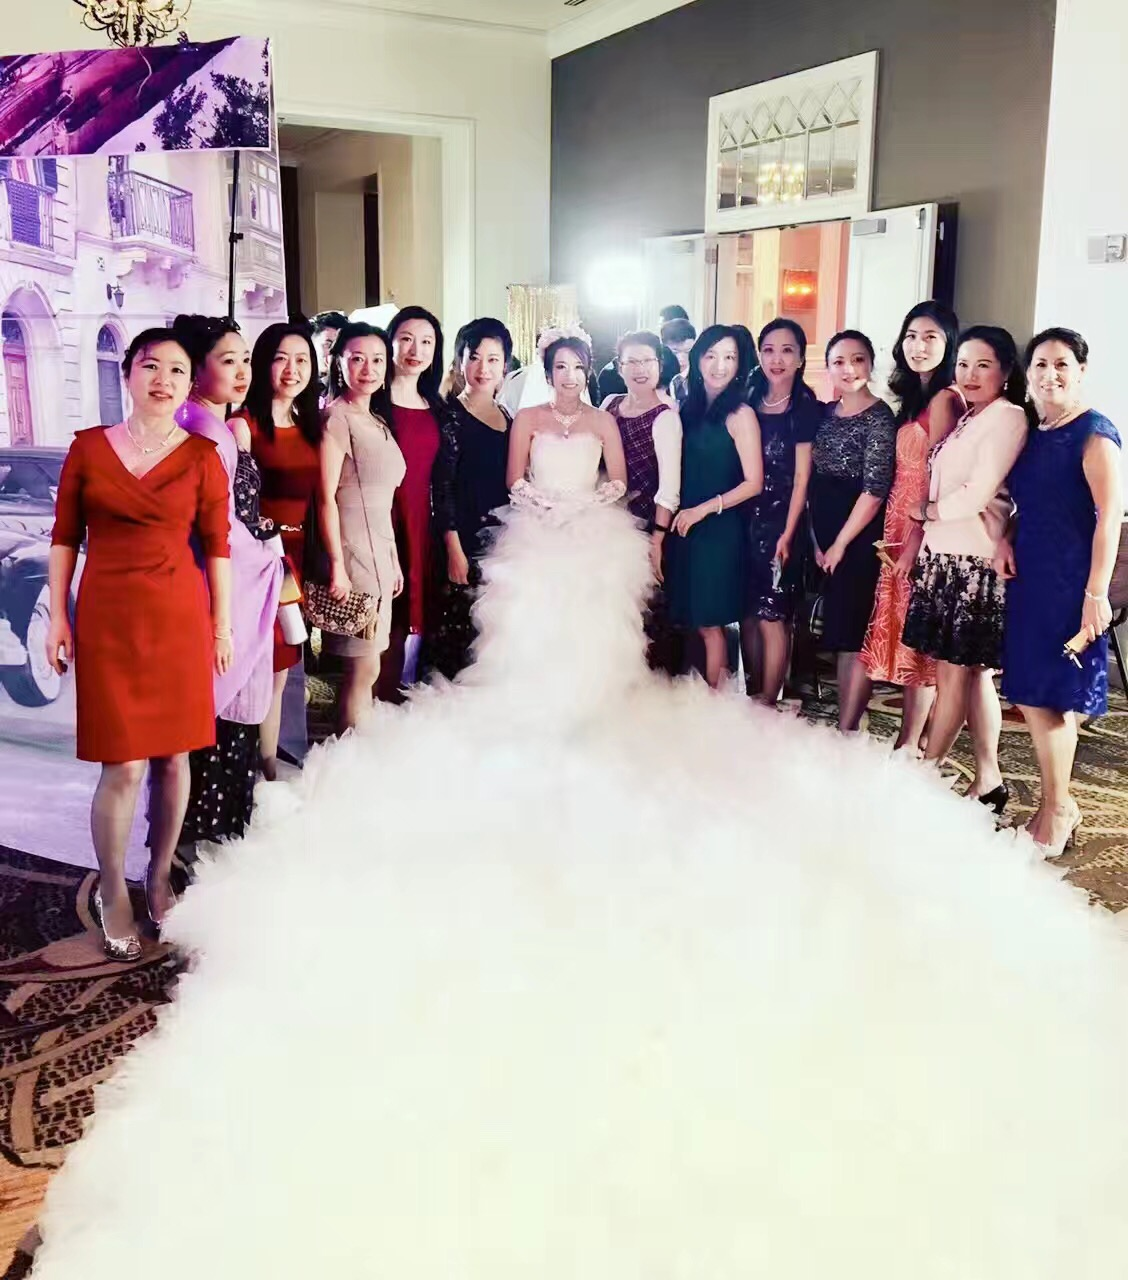 Houston Best Wedding planner|Houston Top Weddings Planning|休斯顿婚庆公司 Houston Best Event planner|Housto